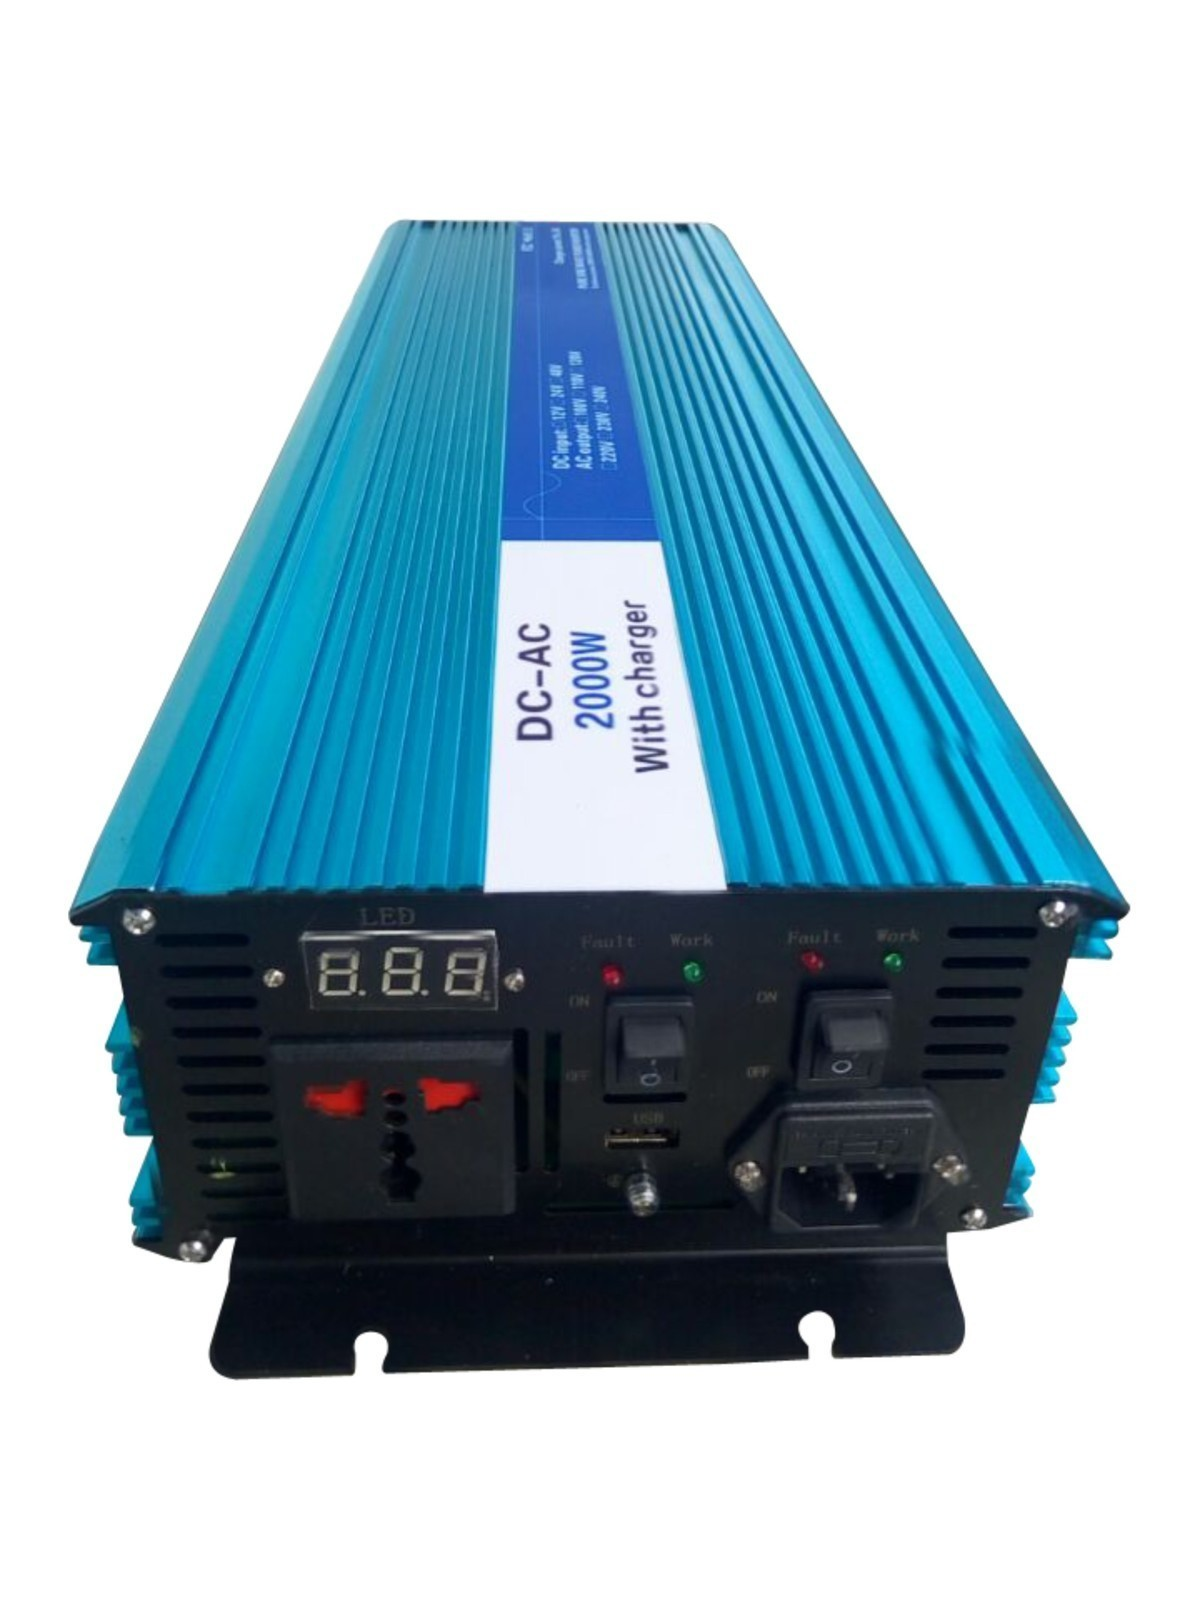 Full Power 2000W Pure Sine Wave Inverter,DC 12V/24V/48V To AC 110V/220V,off Grid Solar Inverter With Battery Charger And UPS full power 4000w pure sine wave inverter dc 12v 24v 48v to ac110v 220v off grid solar inverter with battery charger and ups